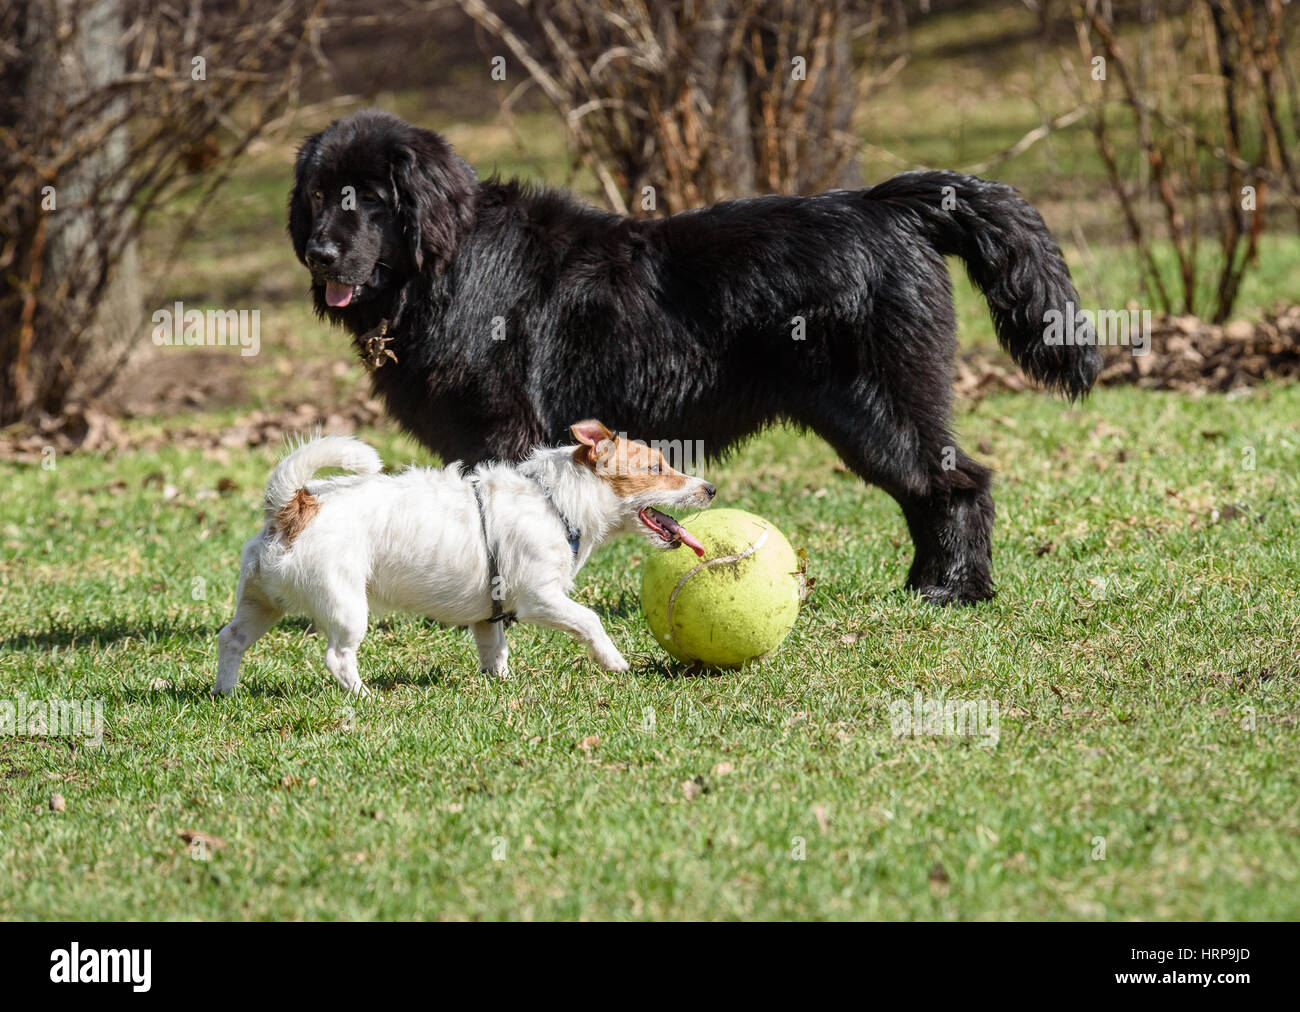 Newfoundland dog and Jack Russell Terrier. Black vs White. Big vs Small. - Stock Image